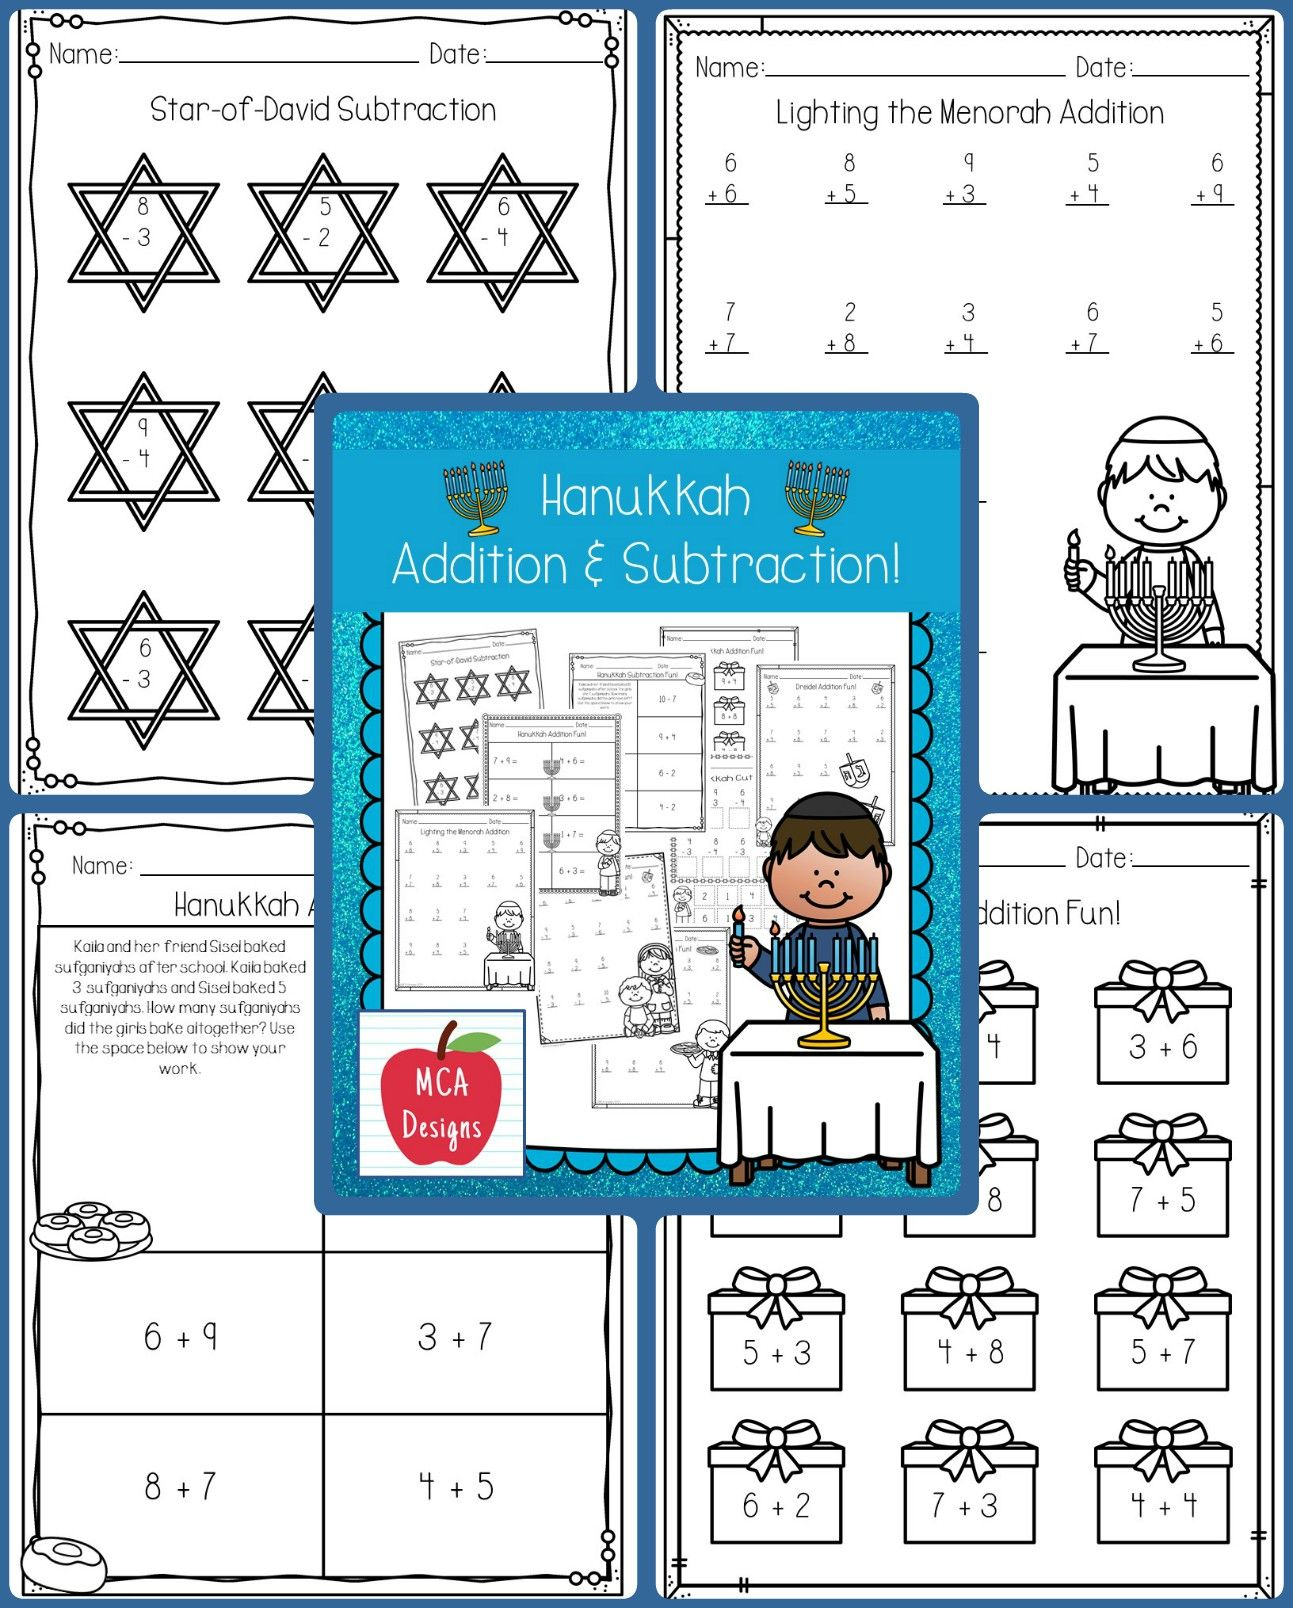 Hanukkah Addition And Subtraction With Images